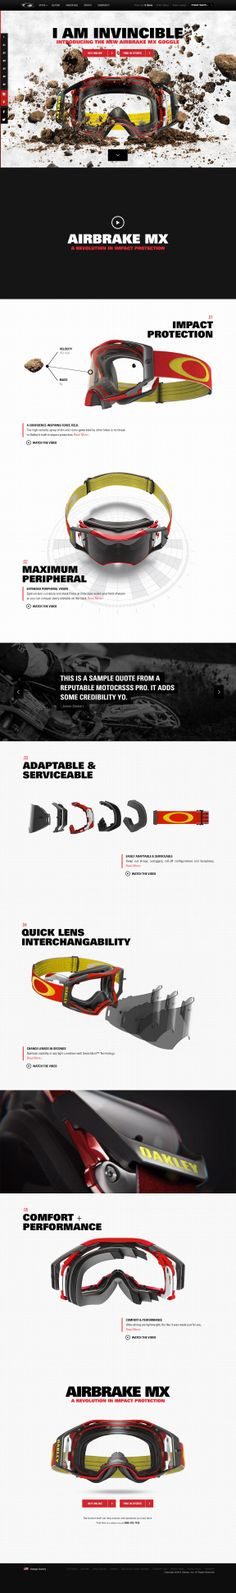 "Oakley have launched a mad one pager for their new Airbrake MX. The page load is quite heavy but boy its rewarding. A good example of masterful Parallax Scrolling along with 3D to give depth. Responsive too! Dev notes: ""This project leveraged 3D renders and motion graphics to animate a series of image sequences as the user scrolls. Huge shout out to Sean Reilly for his 3D skills, and all the guys who put the Skrollr framework together. It was a huge help."""